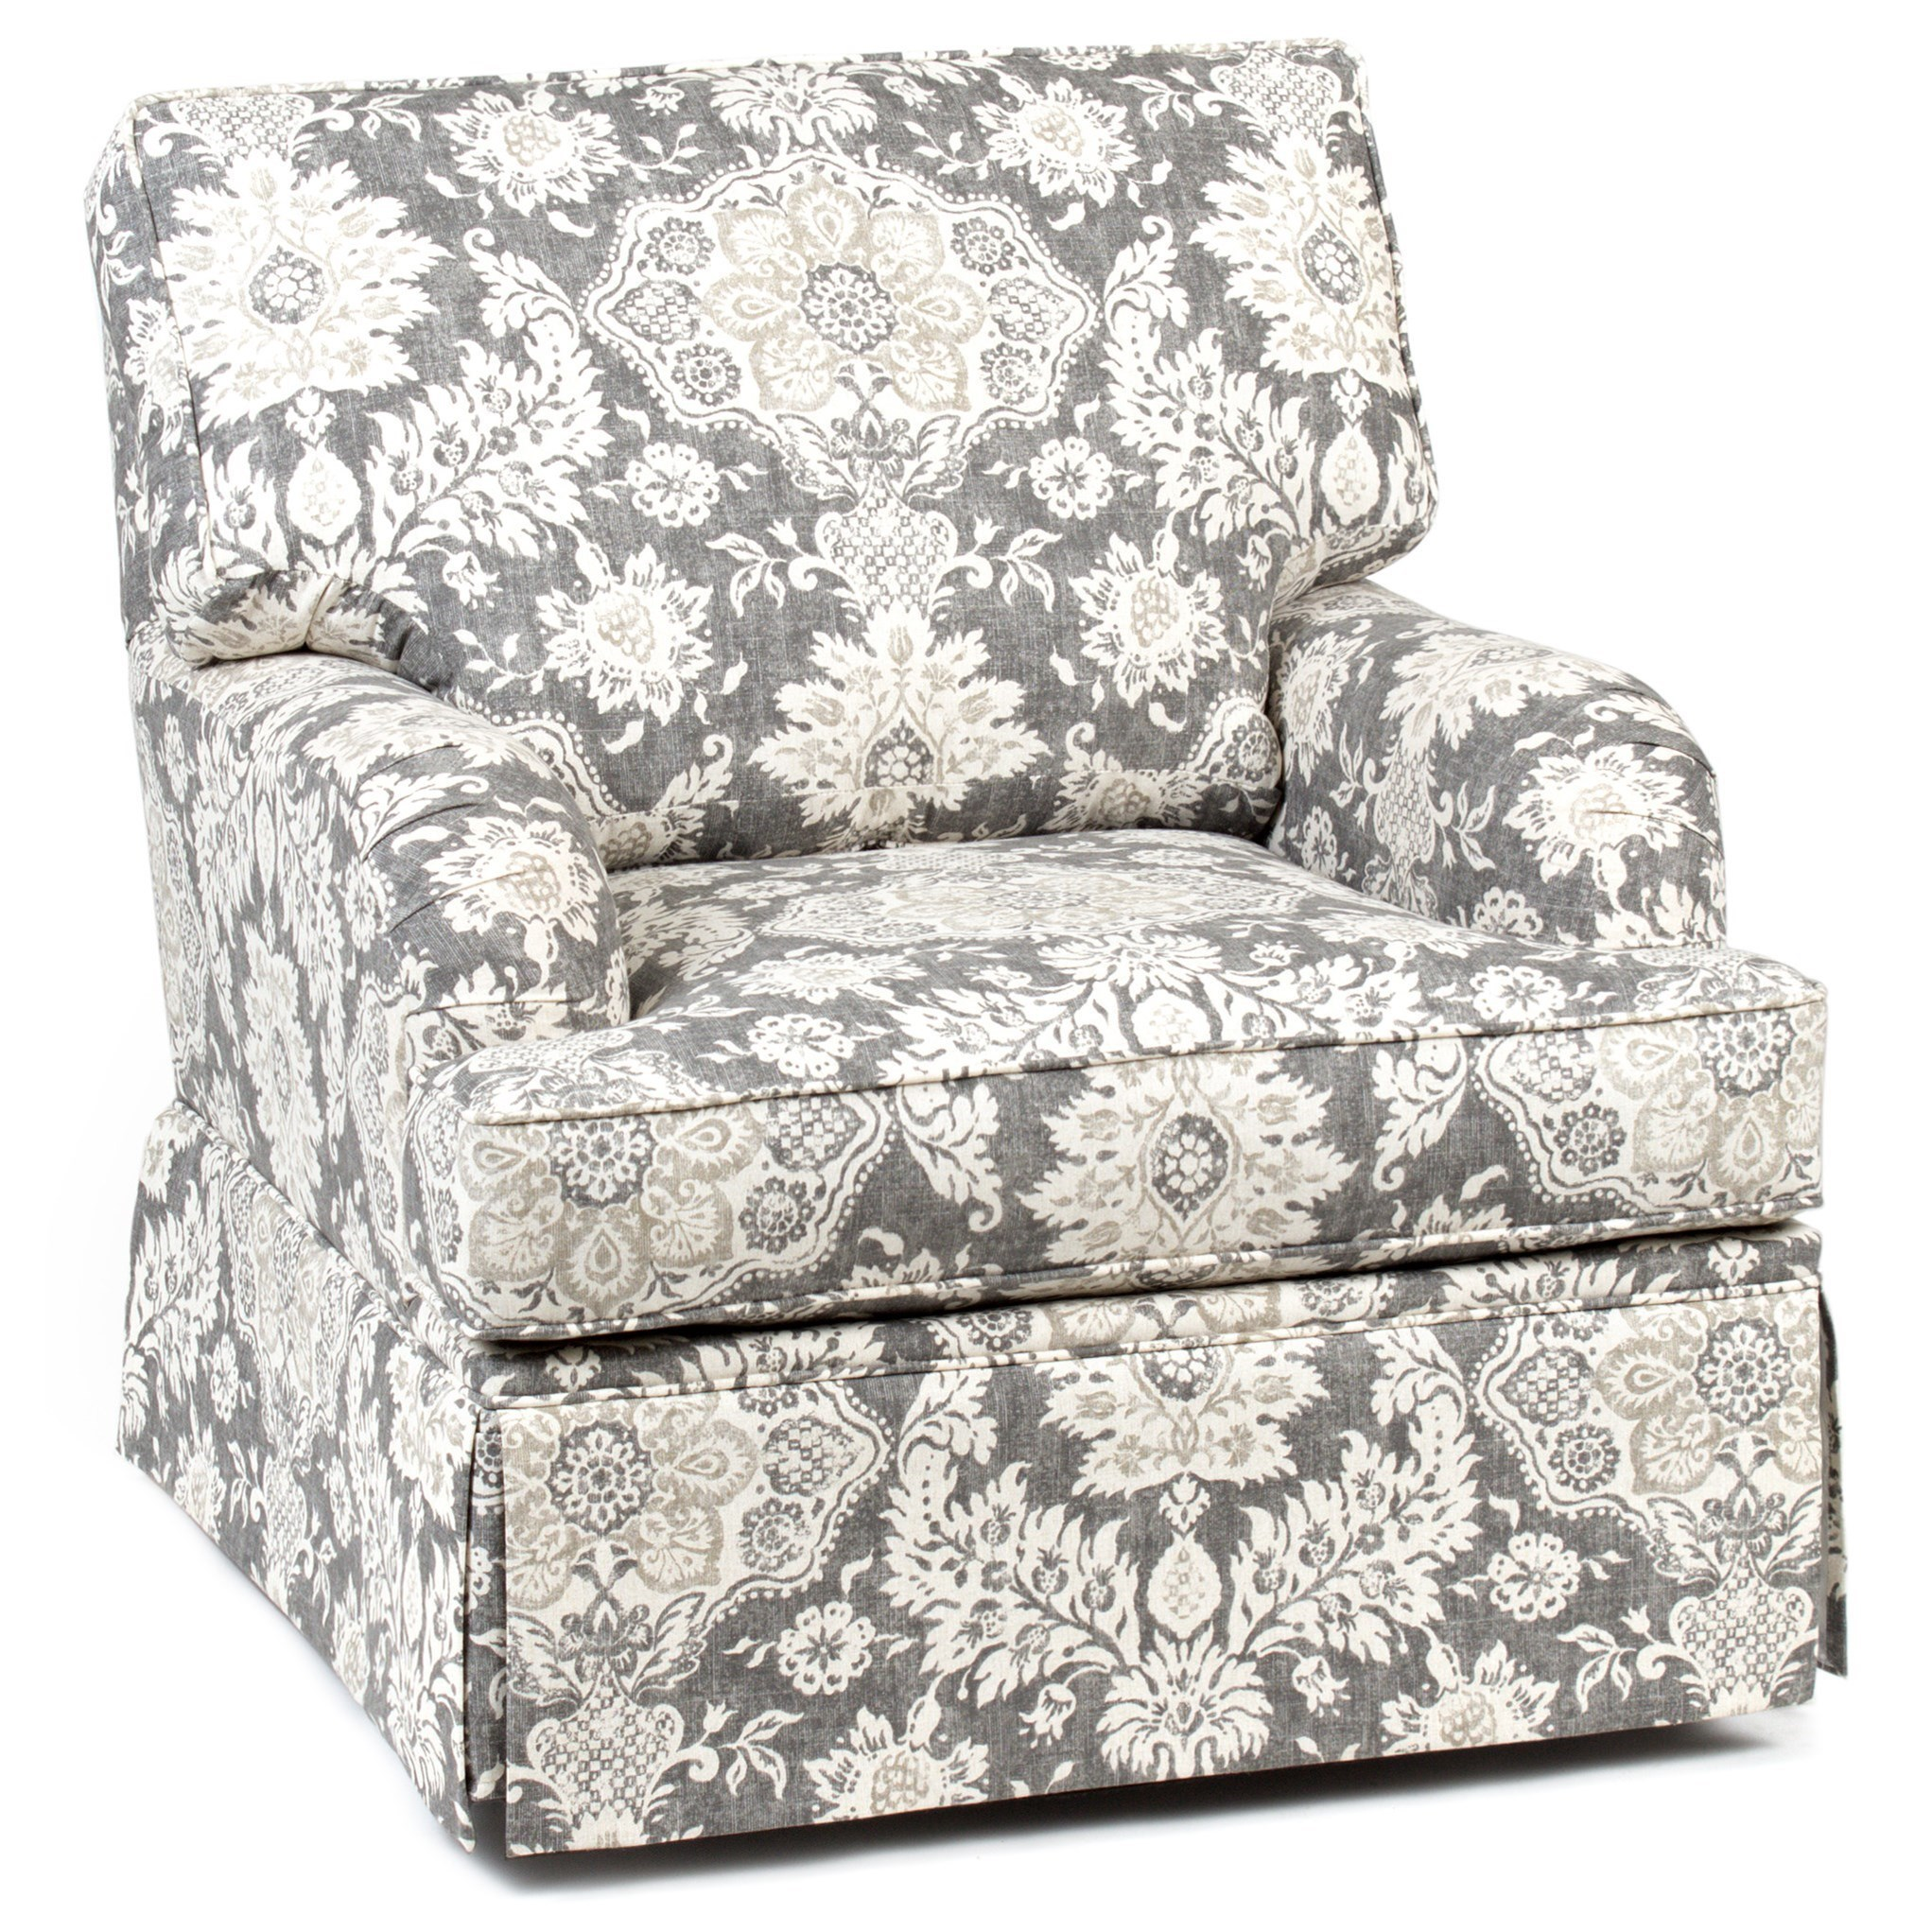 Accent Chairs and Ottomans Traditional Skirted Swivel Glider Chair by Chairs America  sc 1 st  John V Schultz Furniture & Chairs America Accent Chairs and Ottomans 1675SG Traditional Skirted ...